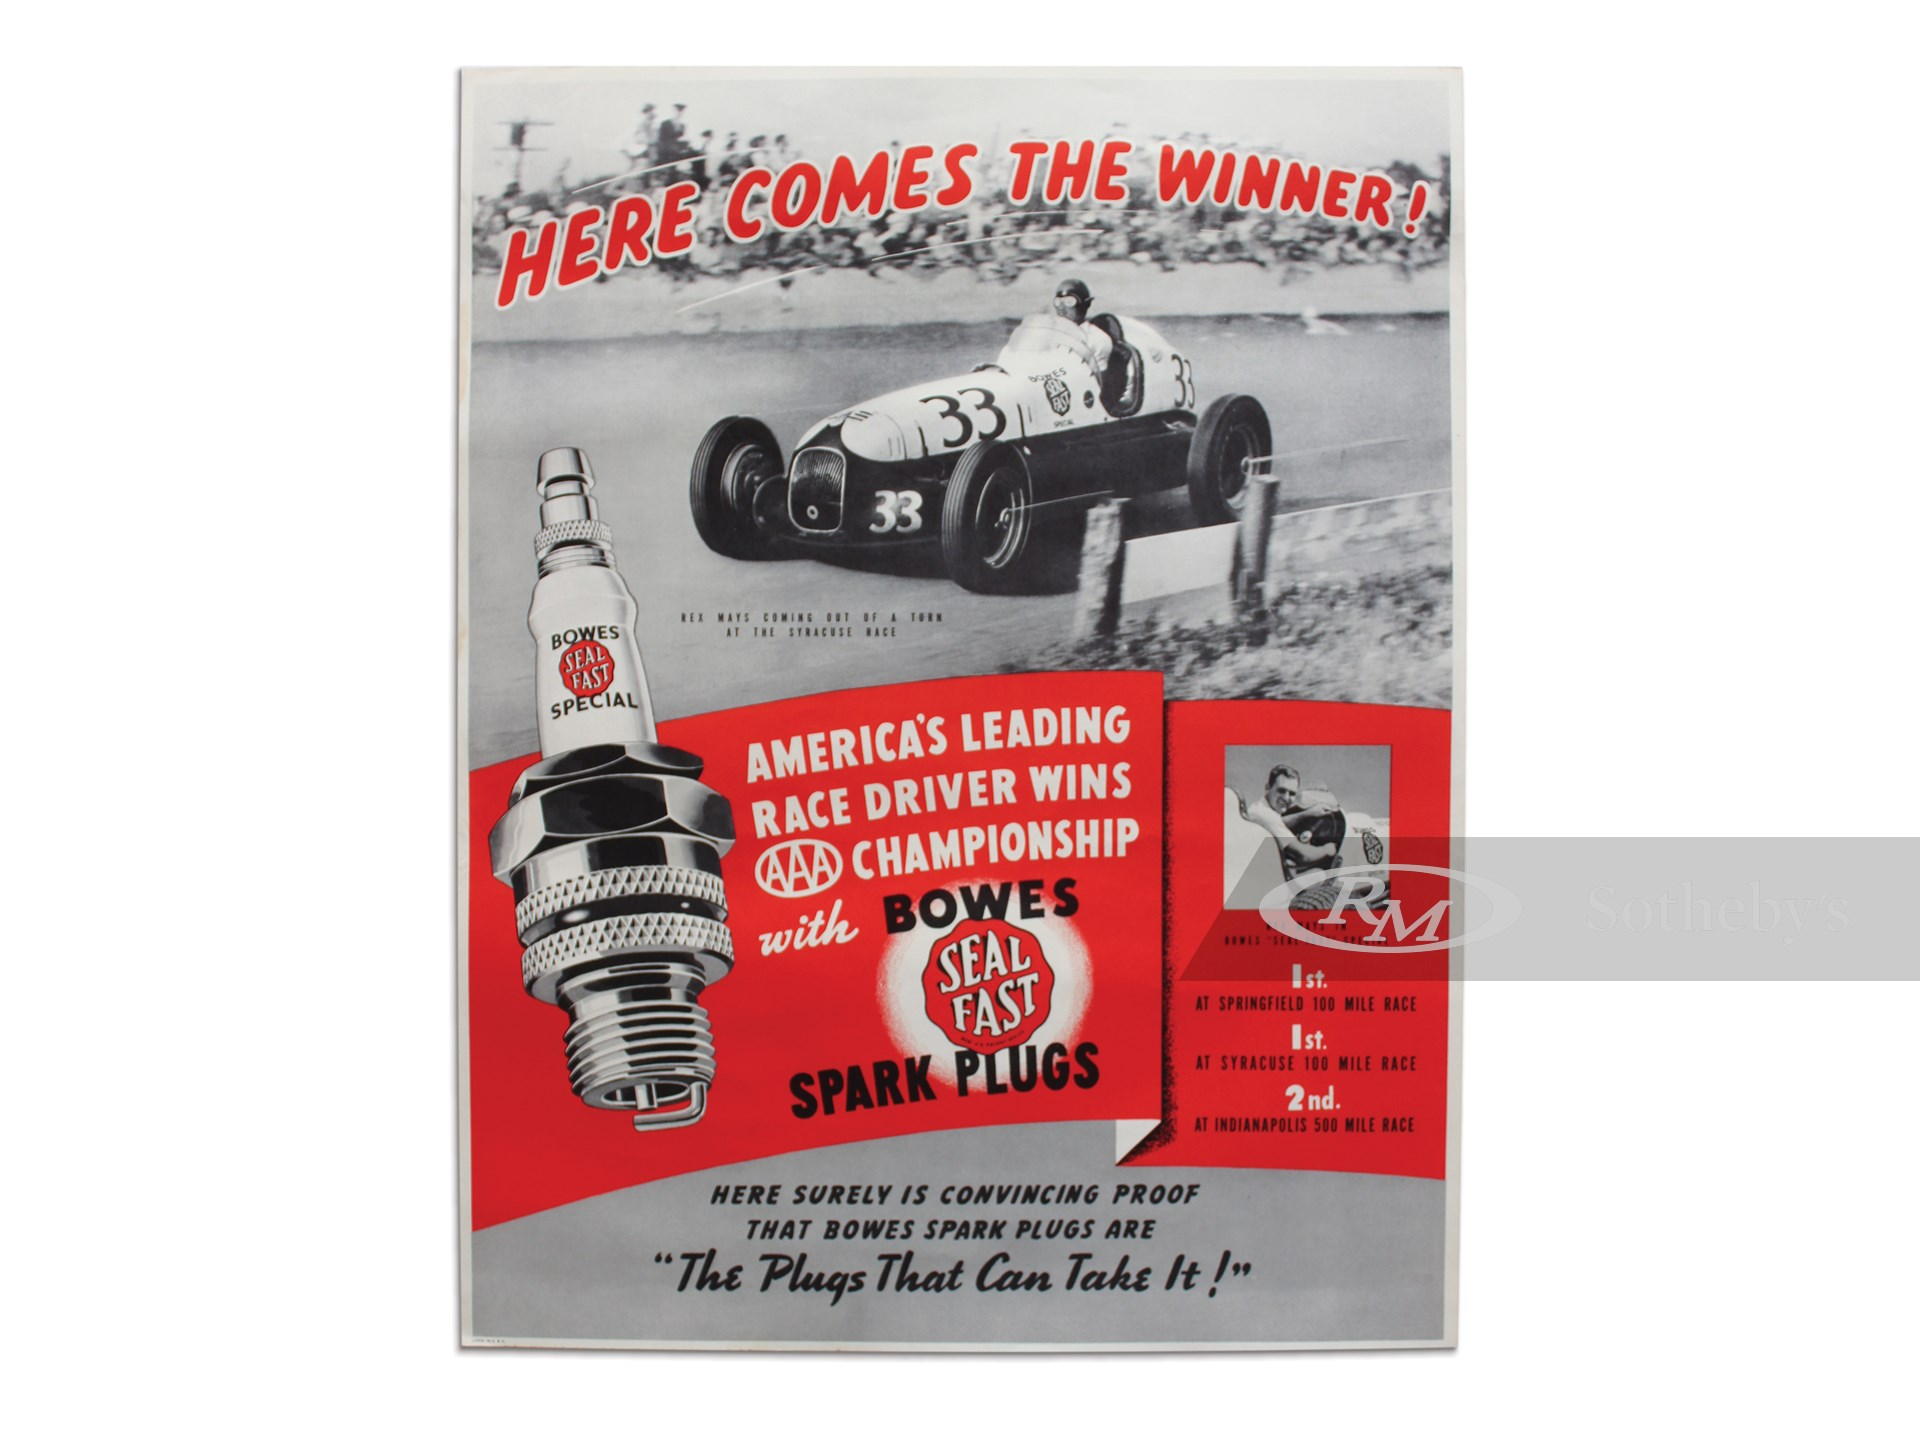 """Here Comes the Winner! America's Leading Race Driver Wins AAA Championship with Bowes Seal Fast Spark Plugs"" Advertising Poster, 1940 -"